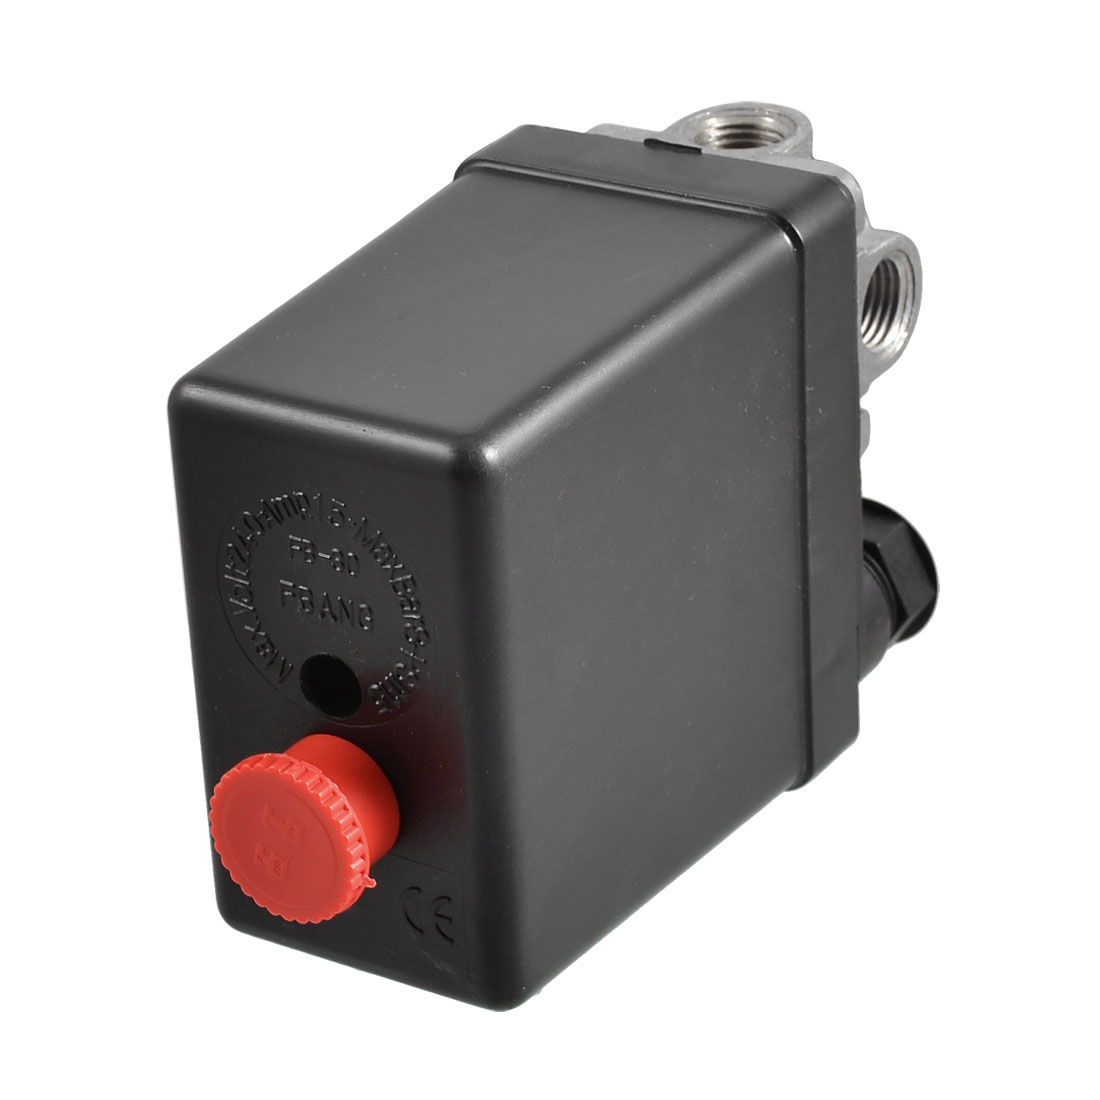 240V 15A 4-port Air Compressor Pressure Switch Control Valve 115 PSI 8 Bar